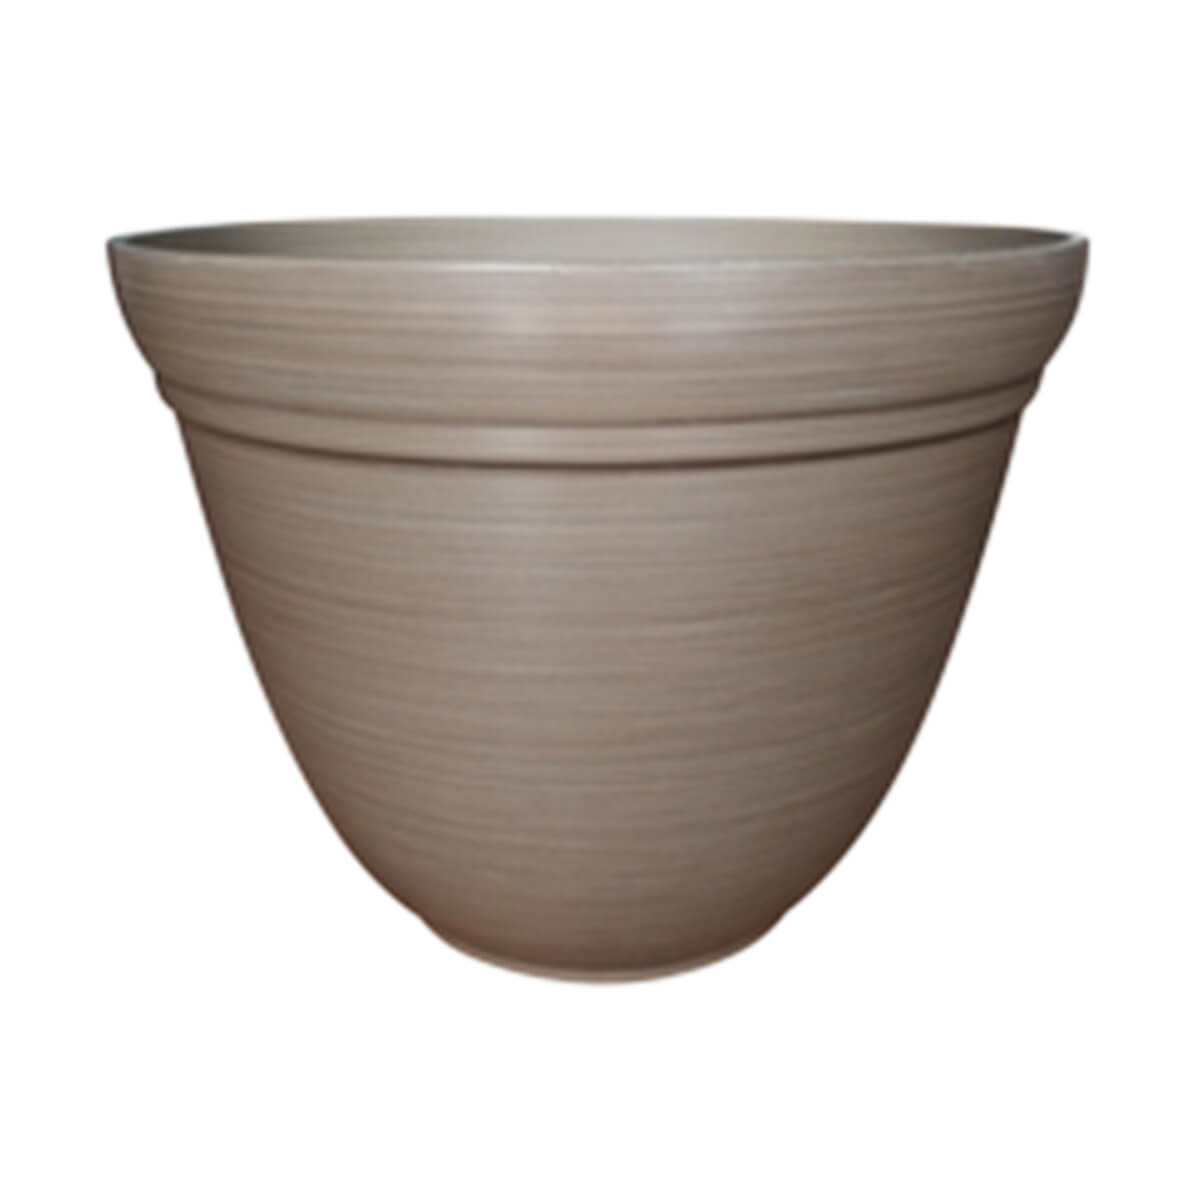 Planter - Greigewood - 22 in